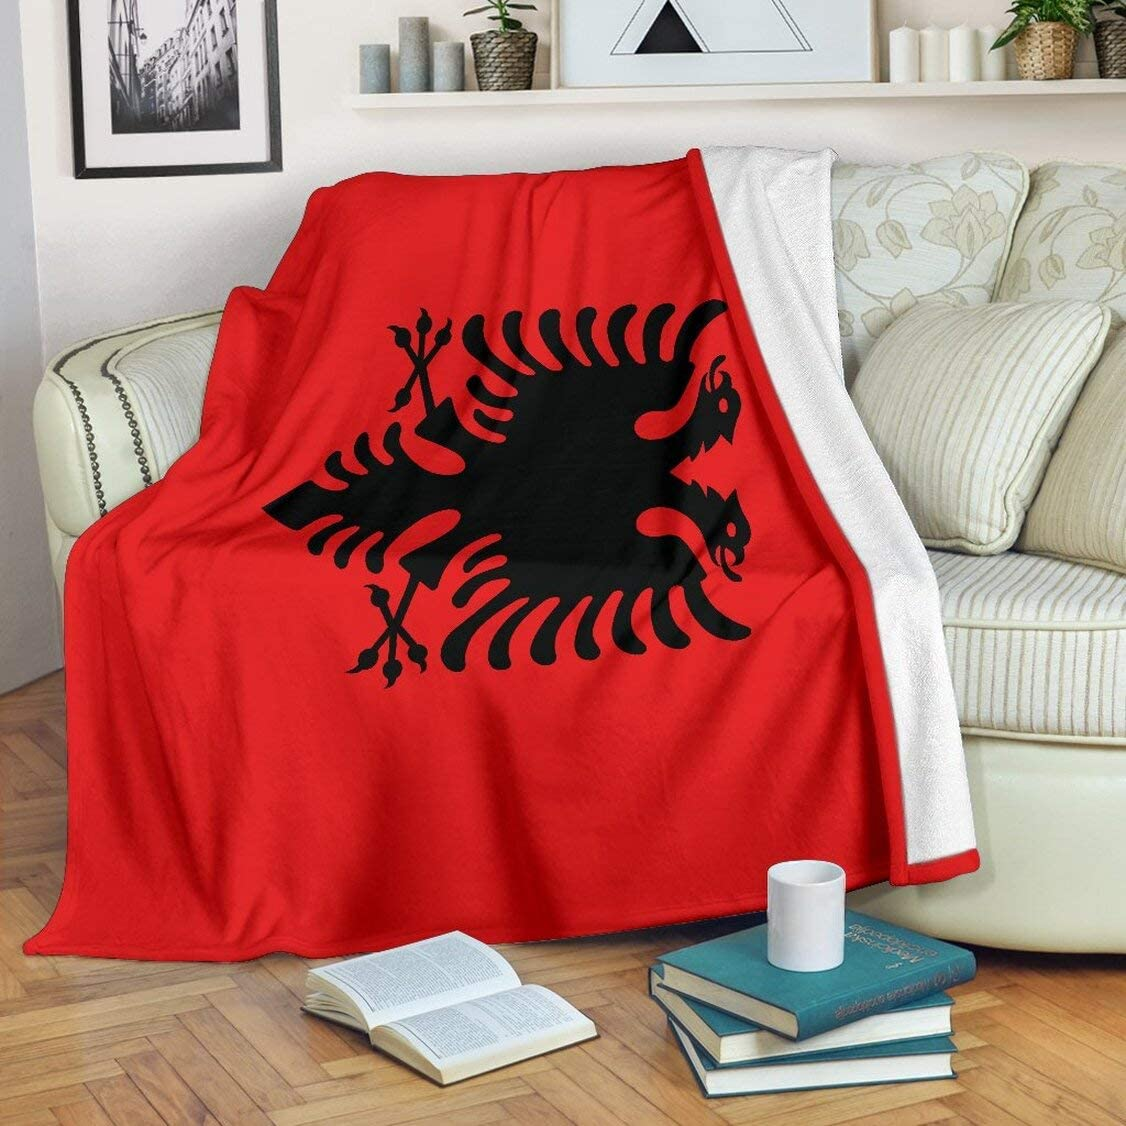 Albania Original F Lag Premium Blanket Print Super Soft And Warm All Season Throw Blanket For Sofa Bed Outdoor Hotel And Home Home Kitchen